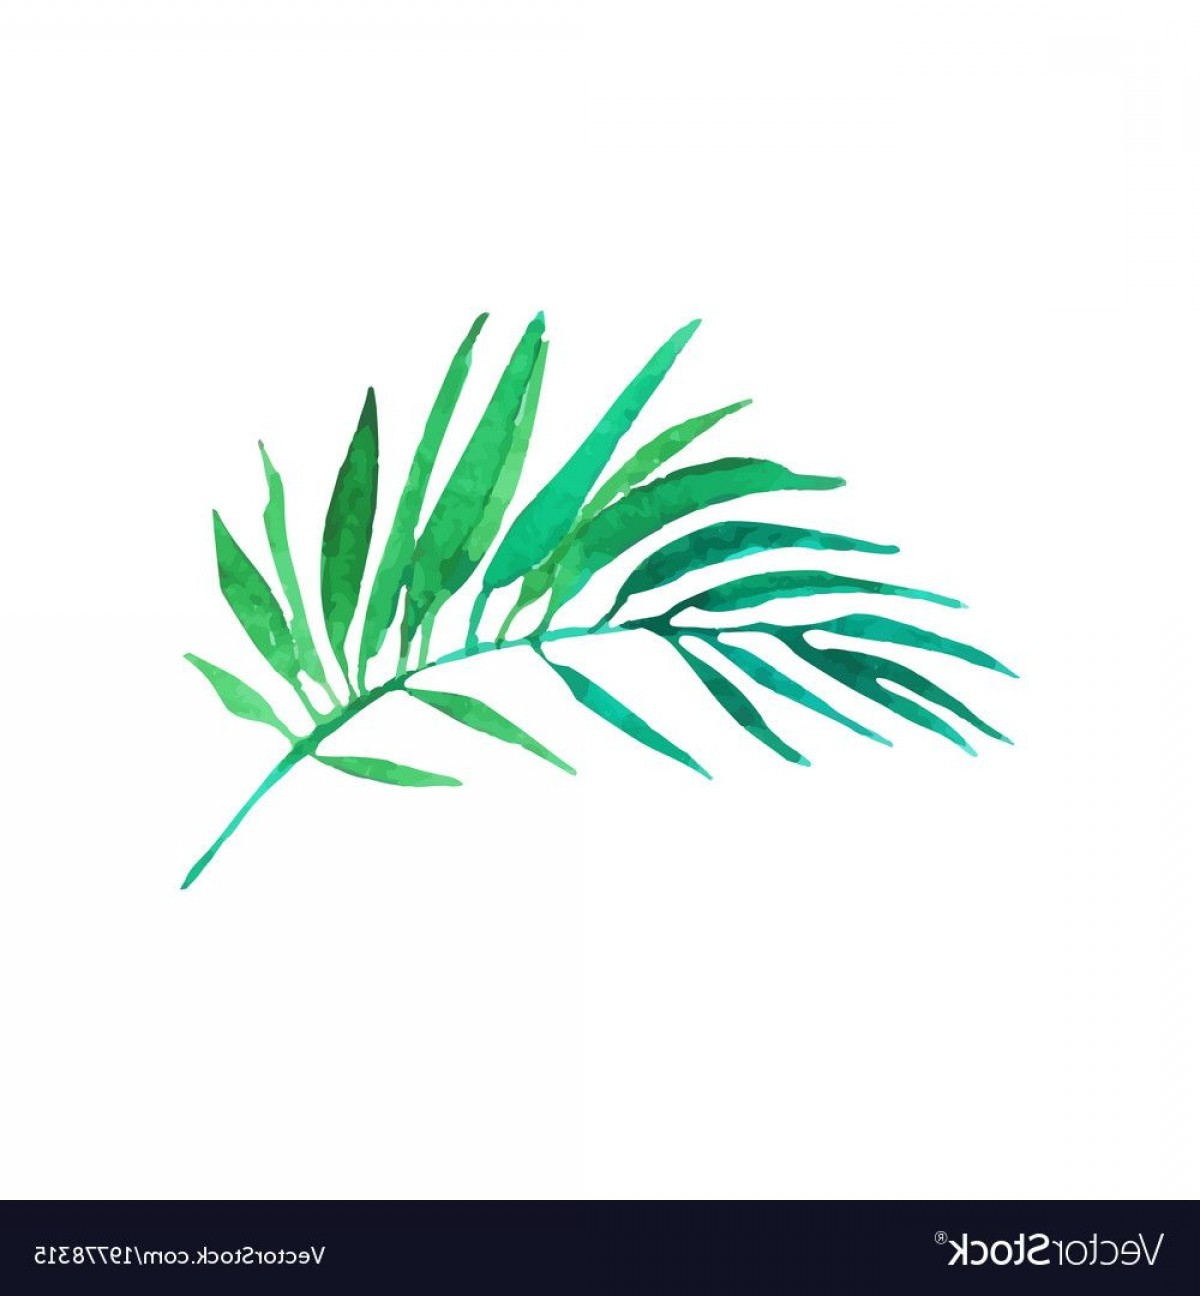 Watercolor Palm Tree Vector: Watercolor Green Palm Tree Branch With Leaves Stock Vector